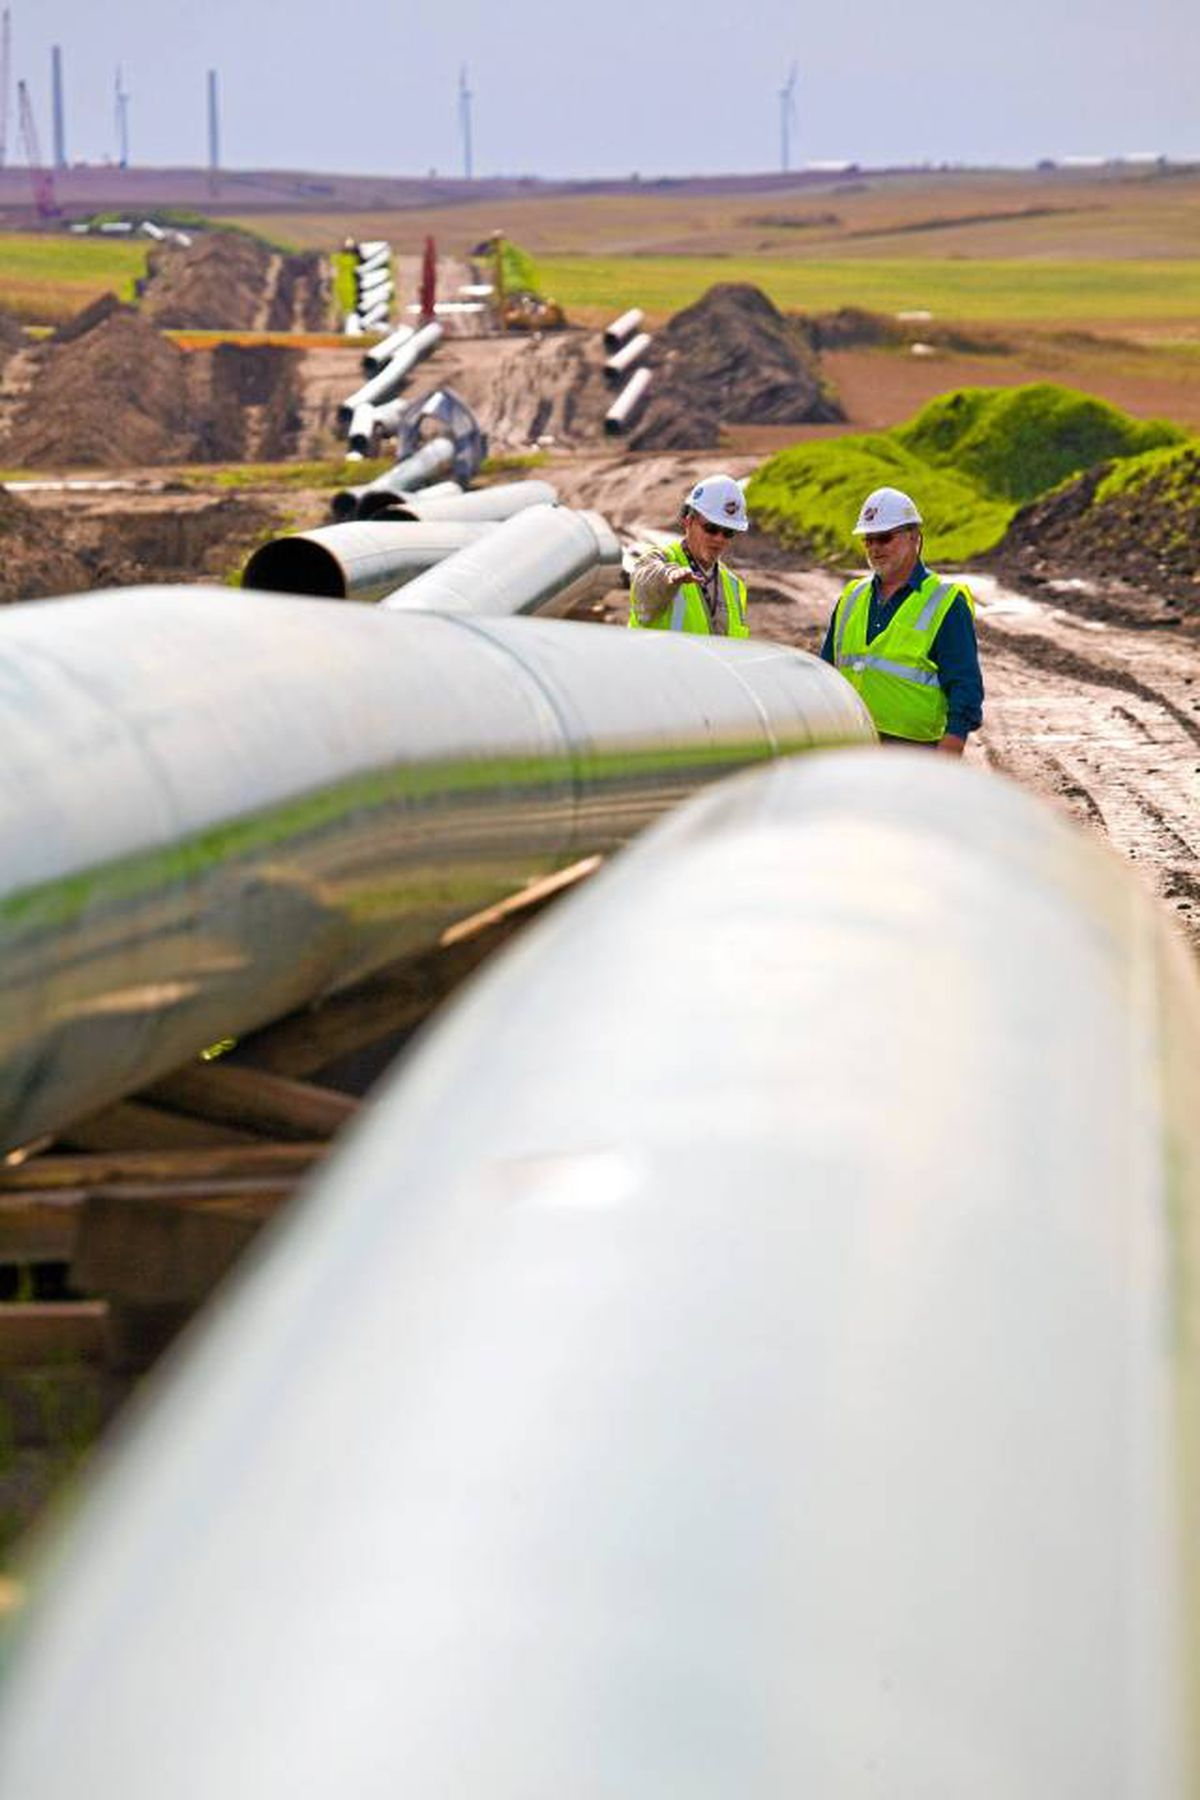 TransCanada has faced questions over whether it should continue with Keystone XL, a massive pipeline that would carry 510,000 barrels of crude a day to Texas.